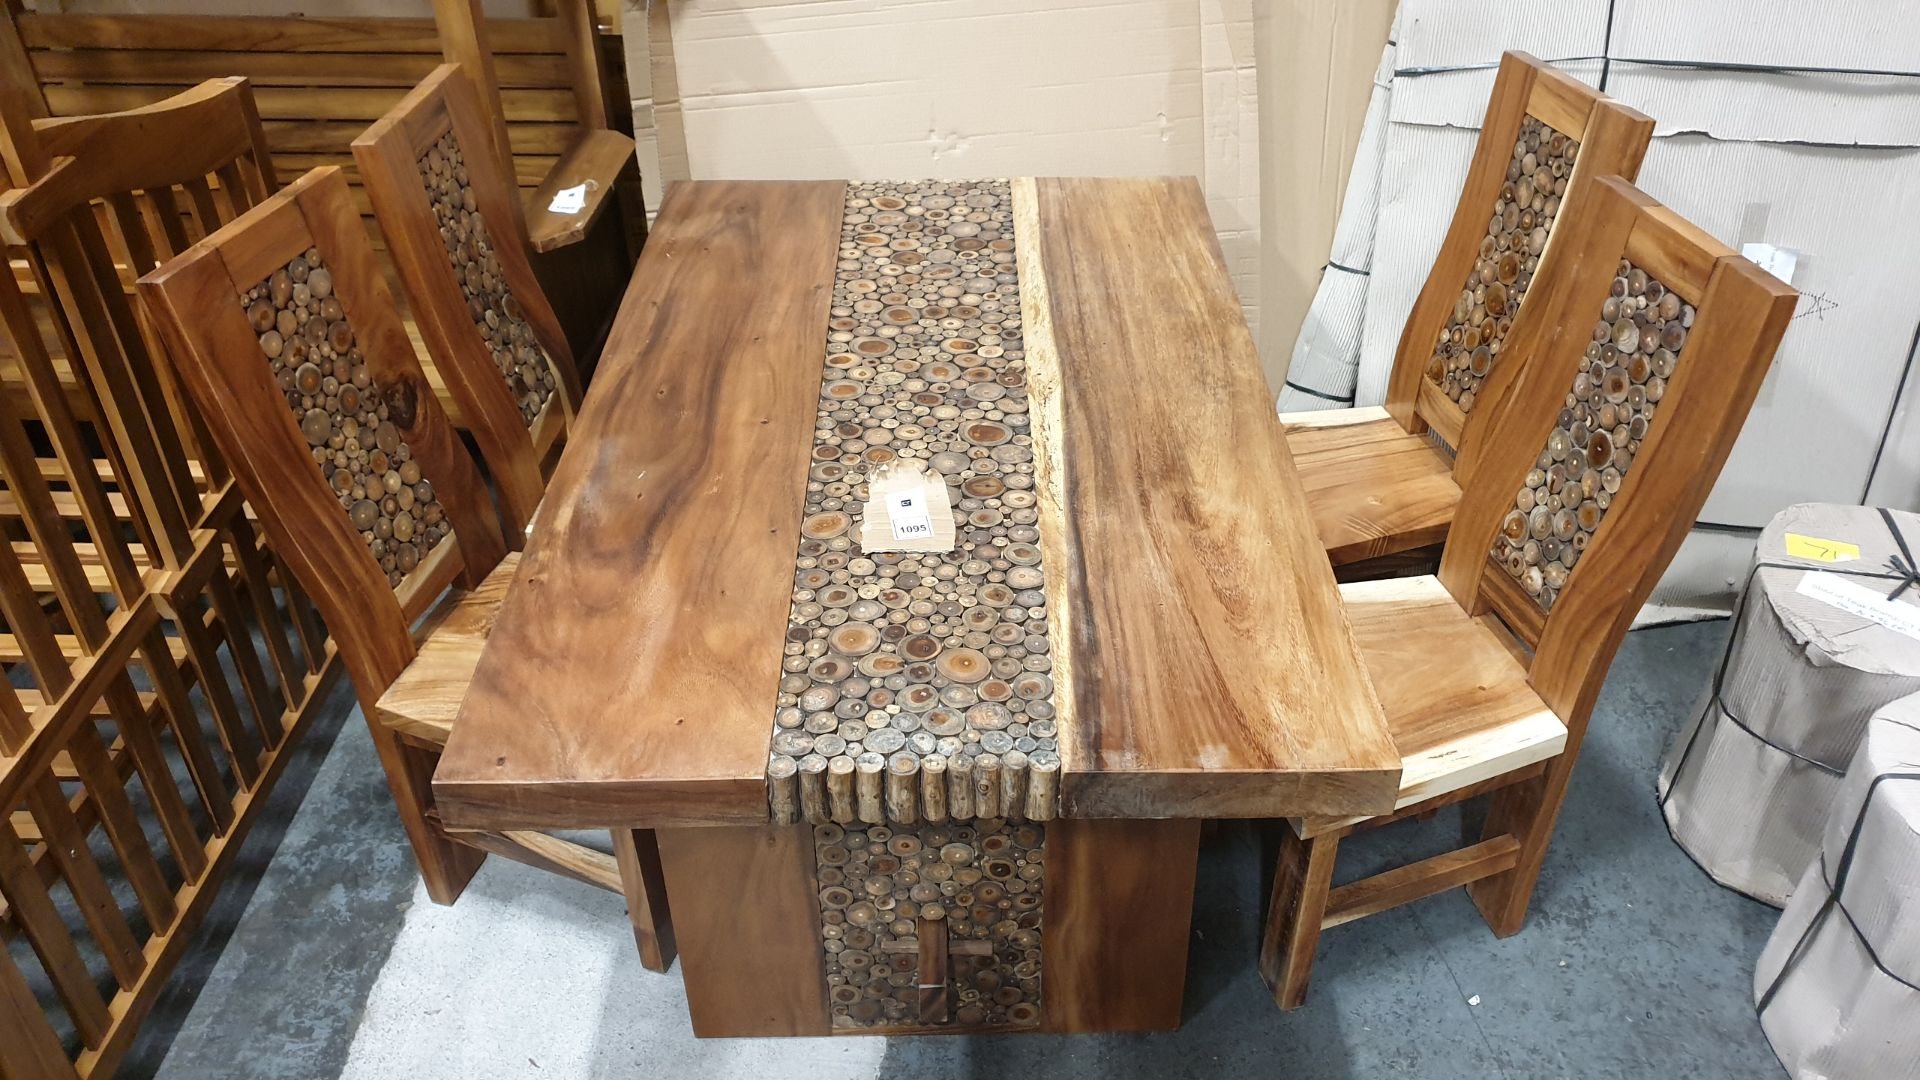 Lot 1095 - BRAND NEW SOLID SUAR WOODEN 5 PIECE COIN TABLE SET 160 X 95 X 76 RRP £1250